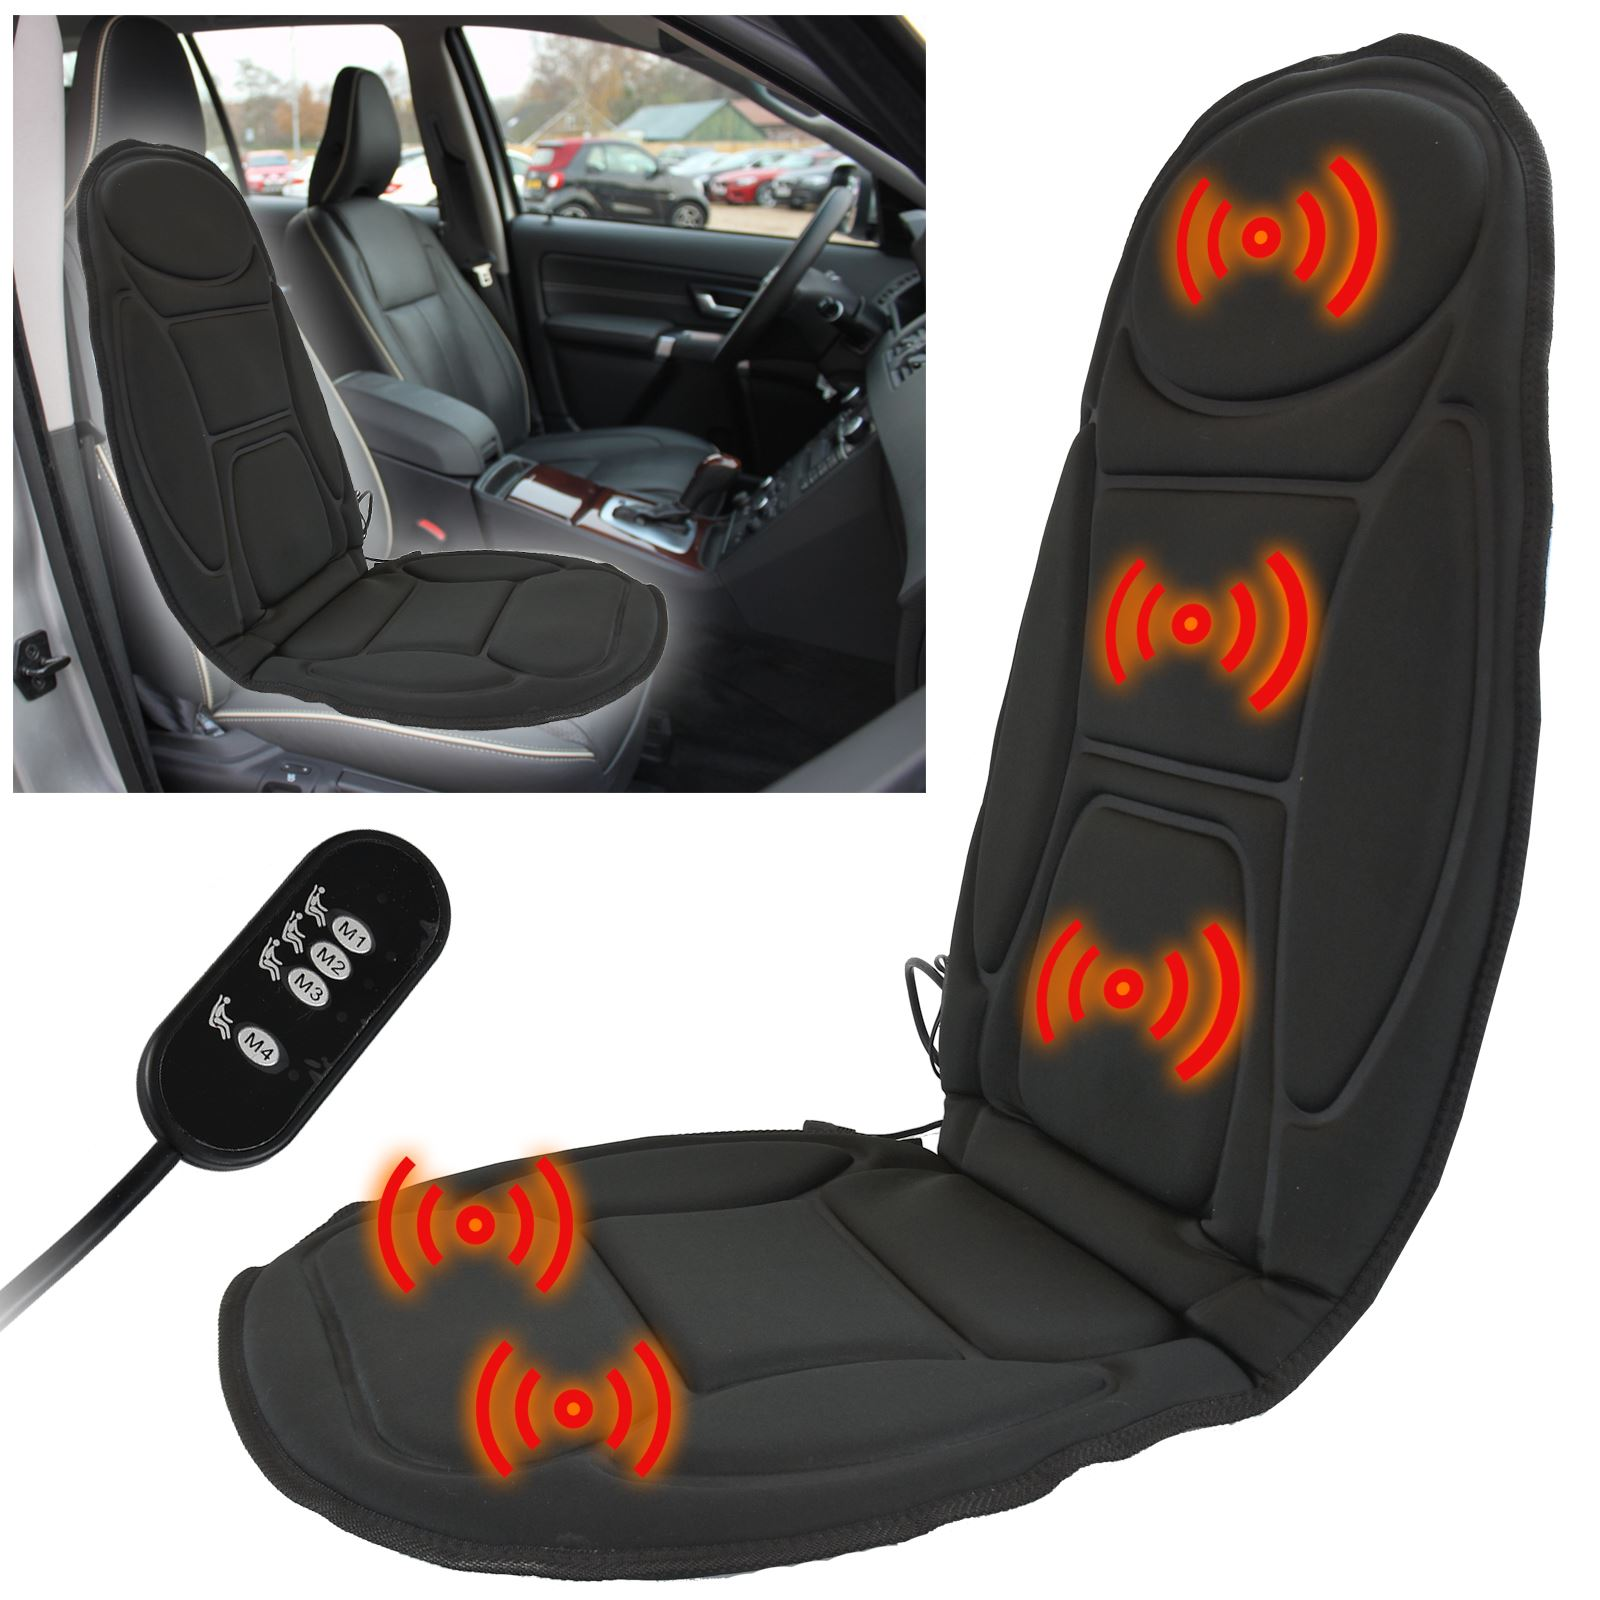 Massage Chair For Car Massage Car Seat Cover Chair Back Massager Vibrate Cushion